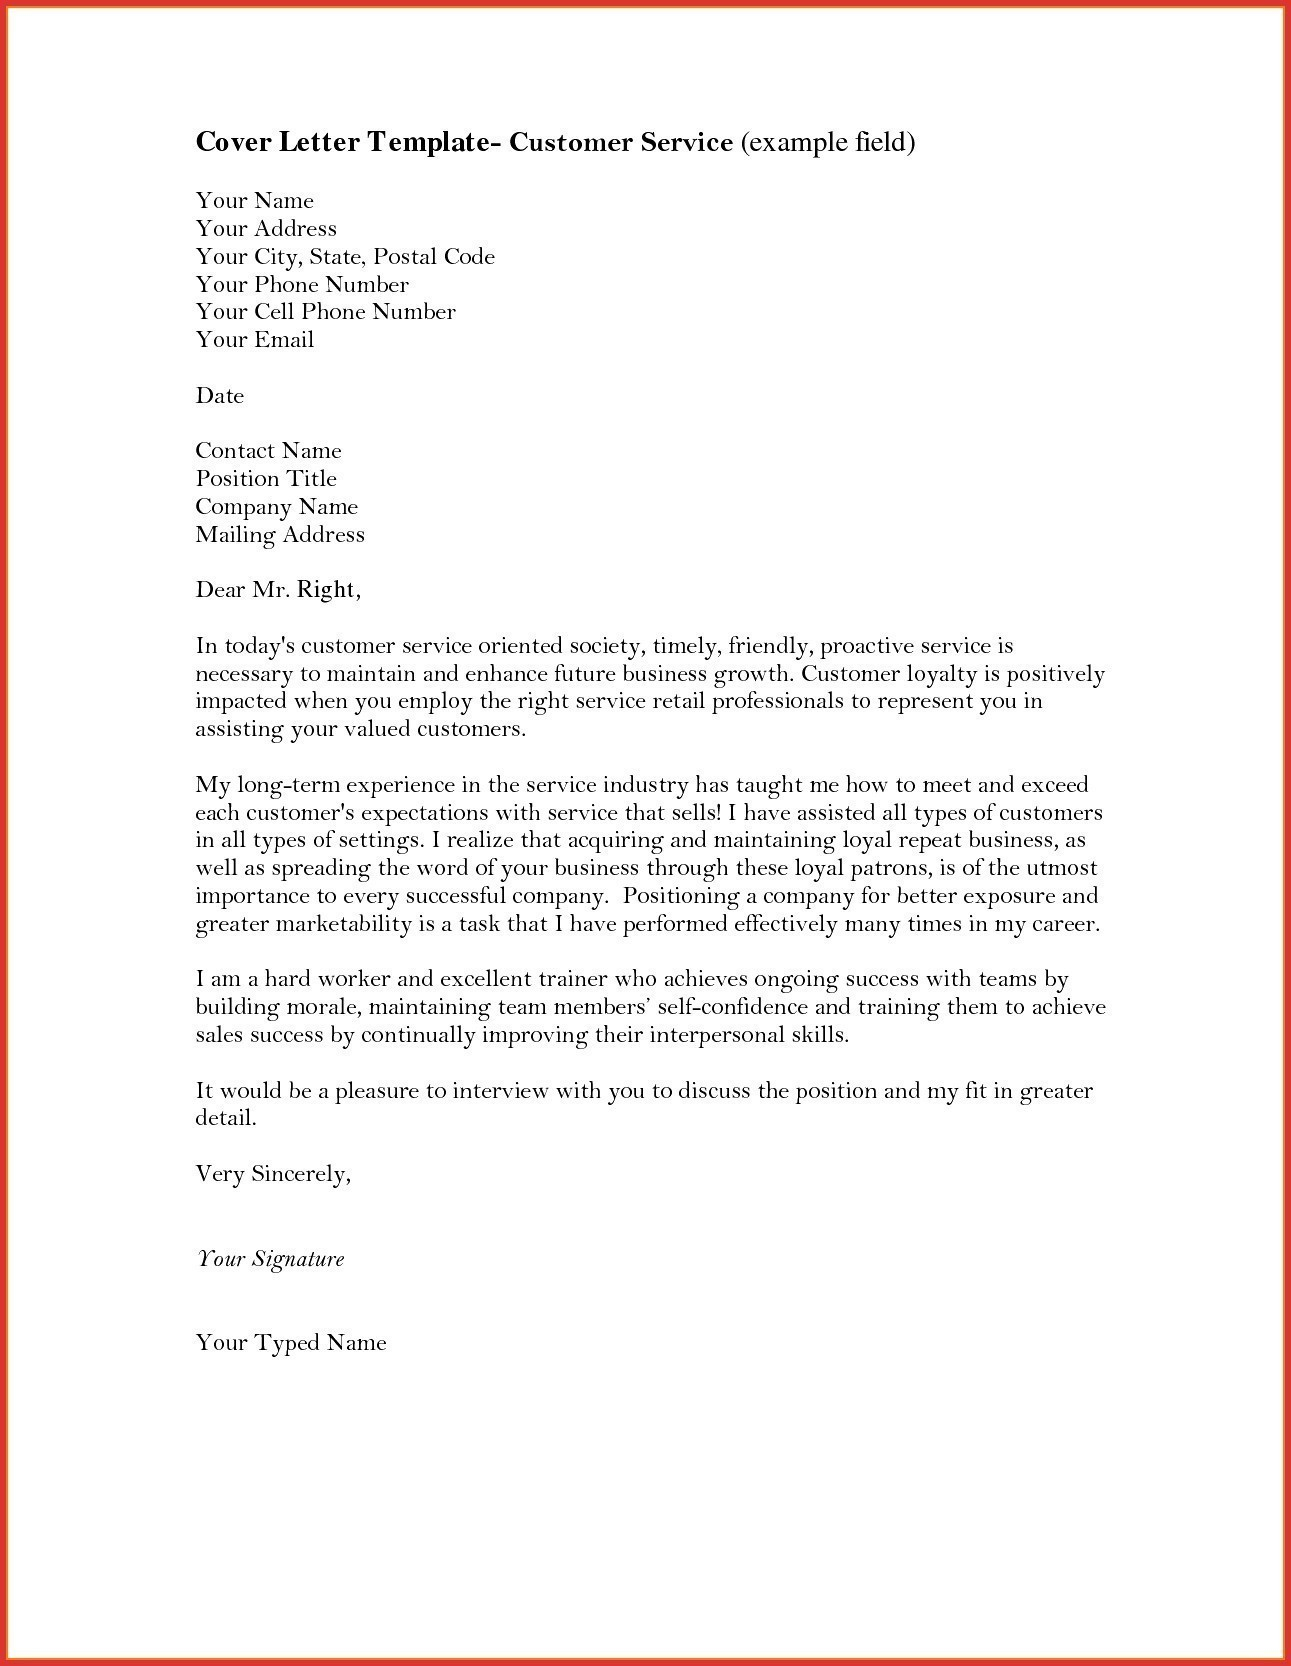 images?q=tbn:ANd9GcQh_l3eQ5xwiPy07kGEXjmjgmBKBRB7H2mRxCGhv1tFWg5c_mWT Sales Letter Template Promoting A Product